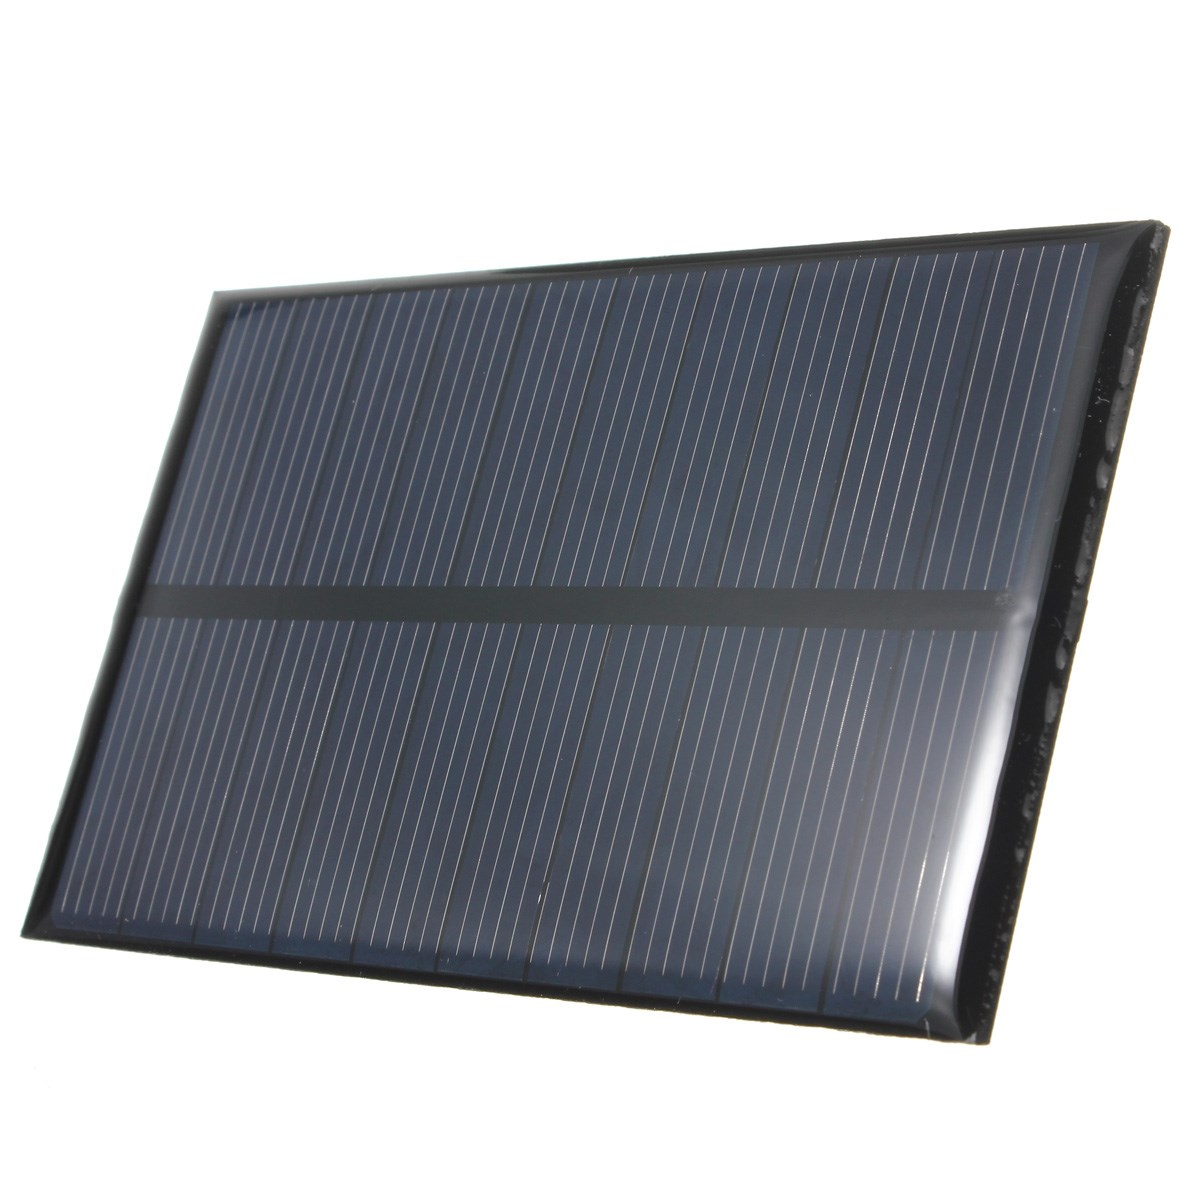 LEORY 5V 1W 200mAh Polycrystalline Silicon Epoxy Stored Energy Solar Panel Module System Solar Cells Battery Phone Charger